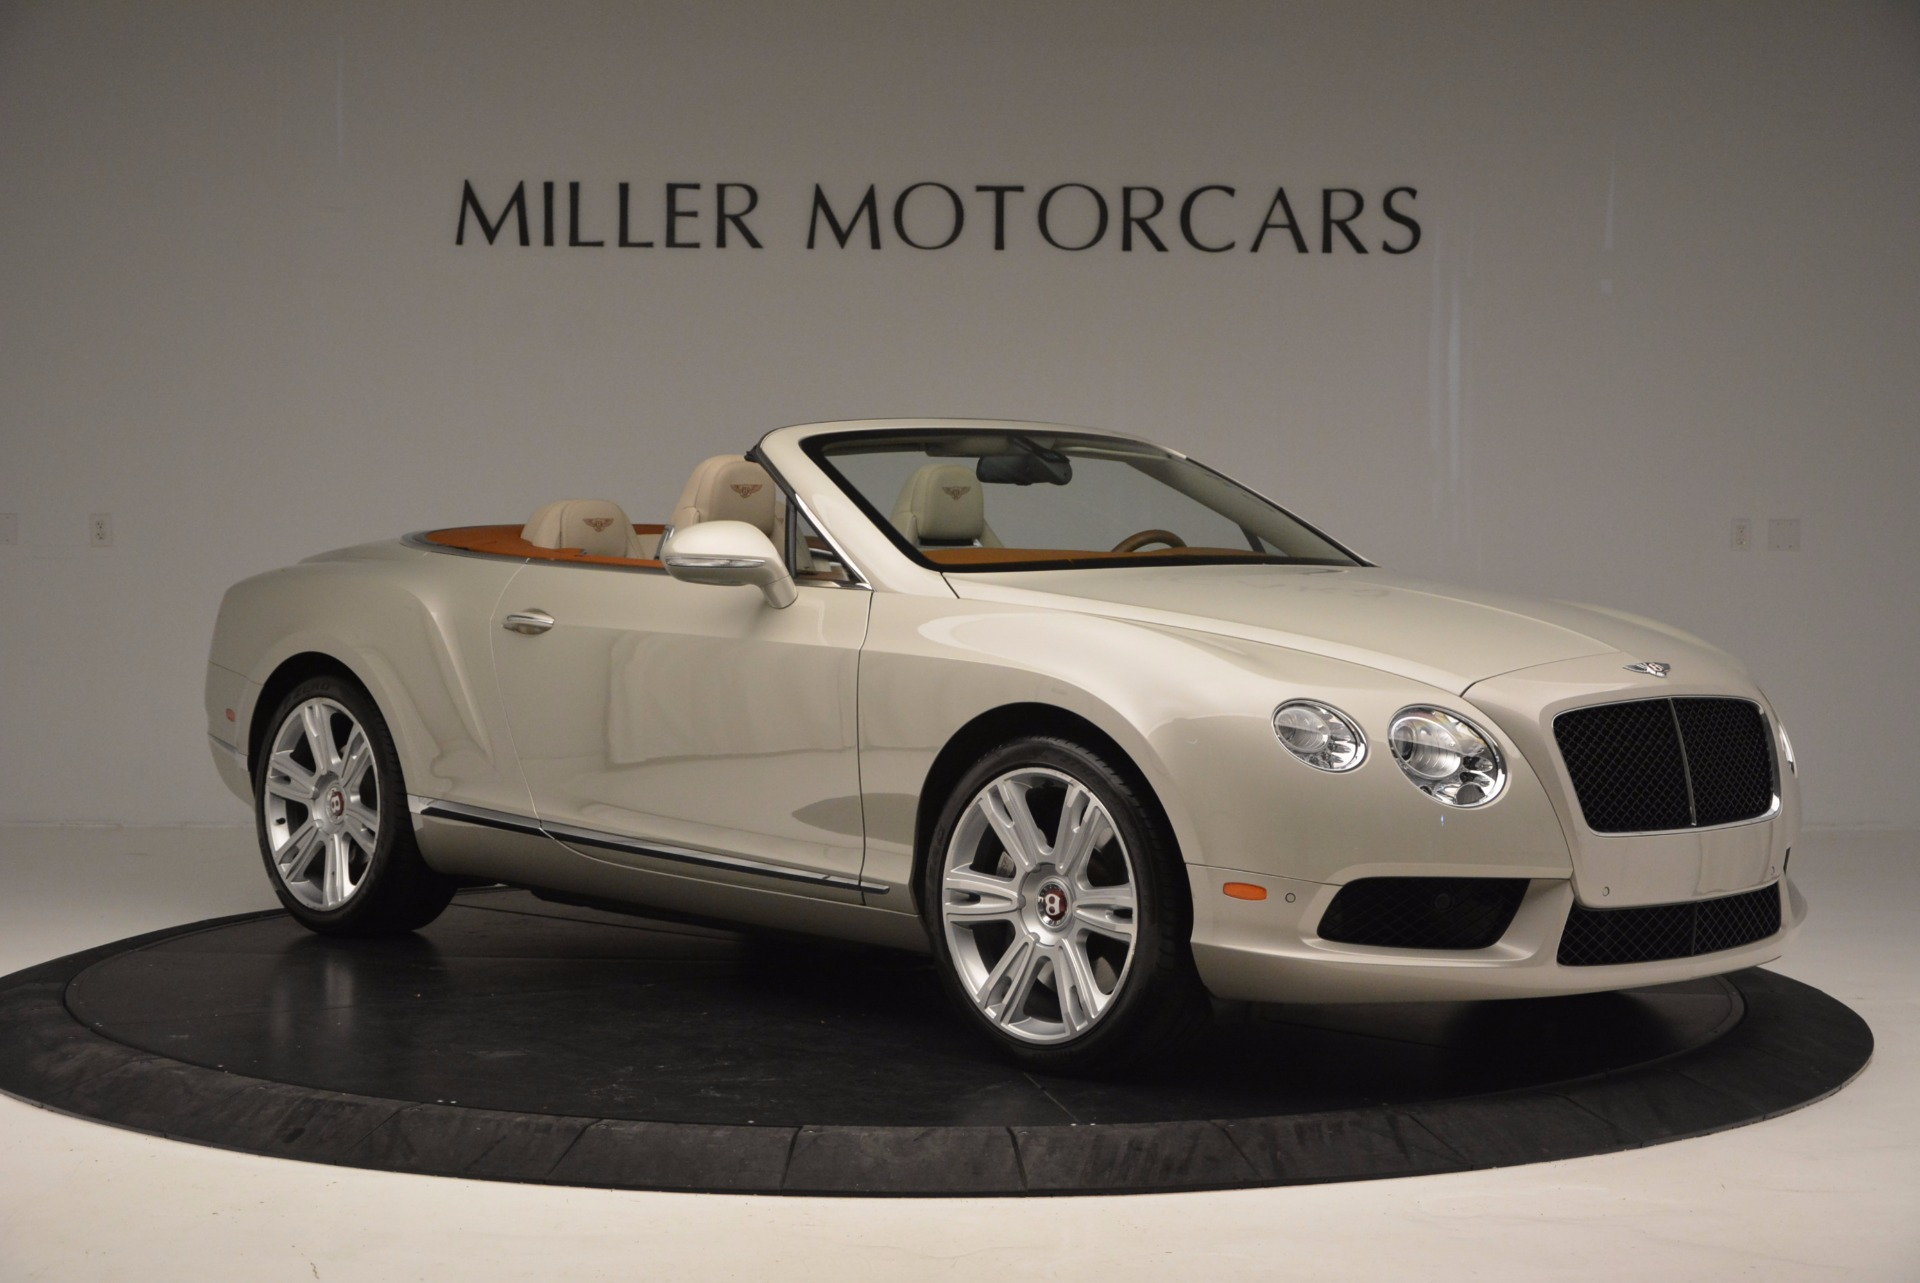 Used 2013 Bentley Continental GTC V8  For Sale In Greenwich, CT. Alfa Romeo of Greenwich, 7108 675_p10